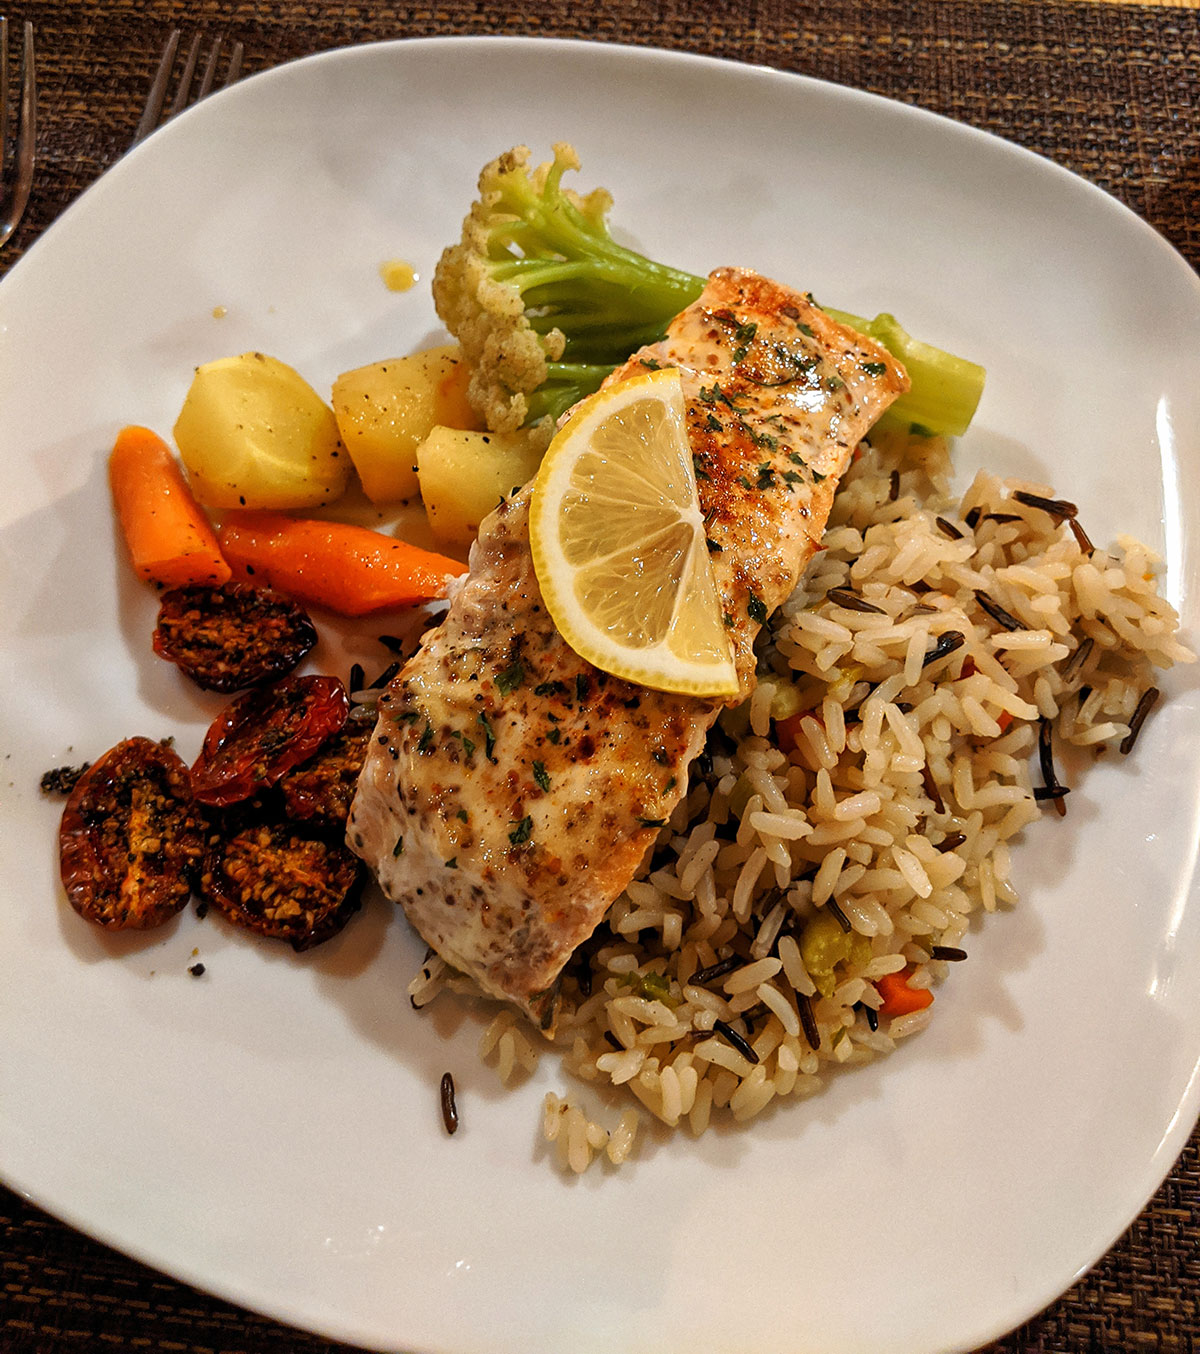 Mount Engadine Lodge Salmon for dinner with veggies and wild rice